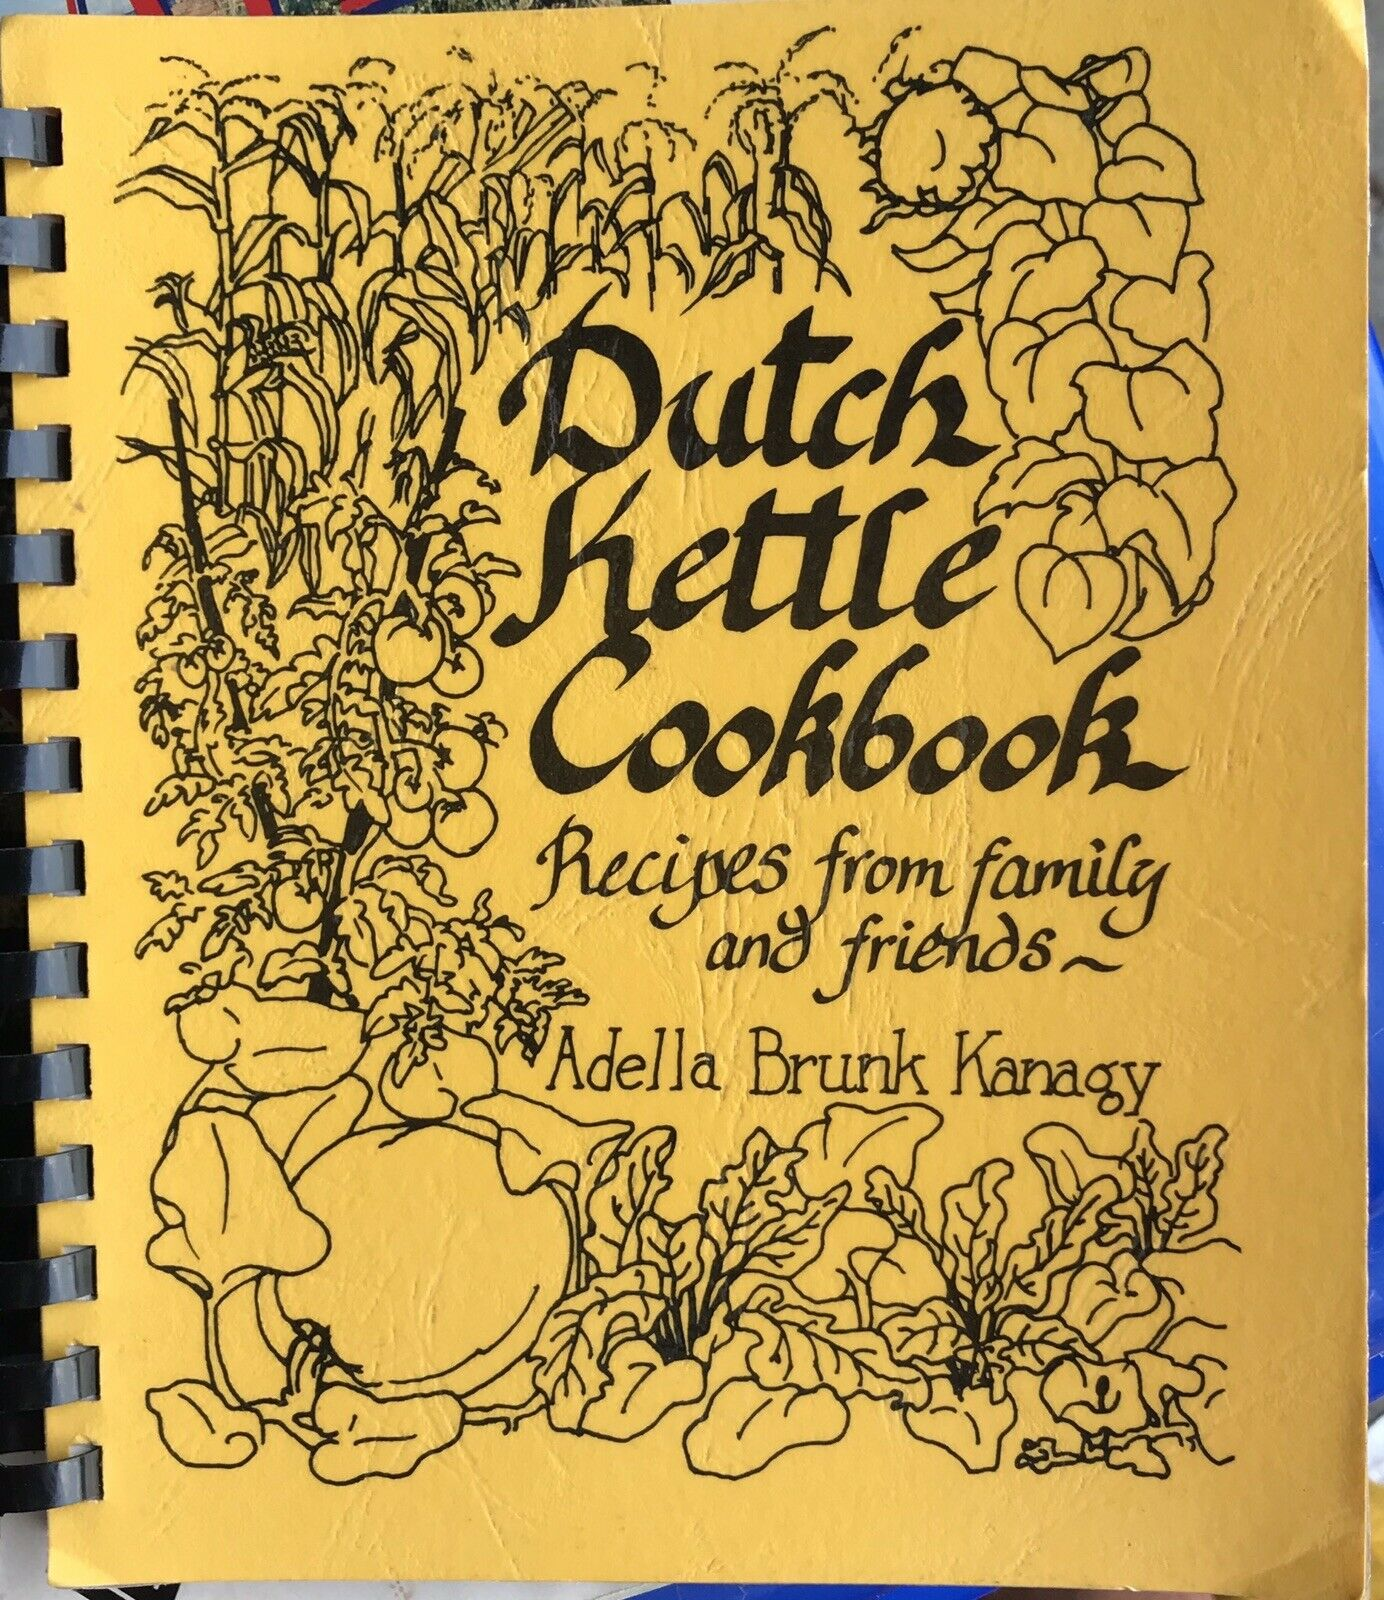 VINTAGE DUTCH KETLE COOKBOOK AMISH RECIPES FAIRFAX VIRGINIA LOCAL COMMUNITY |